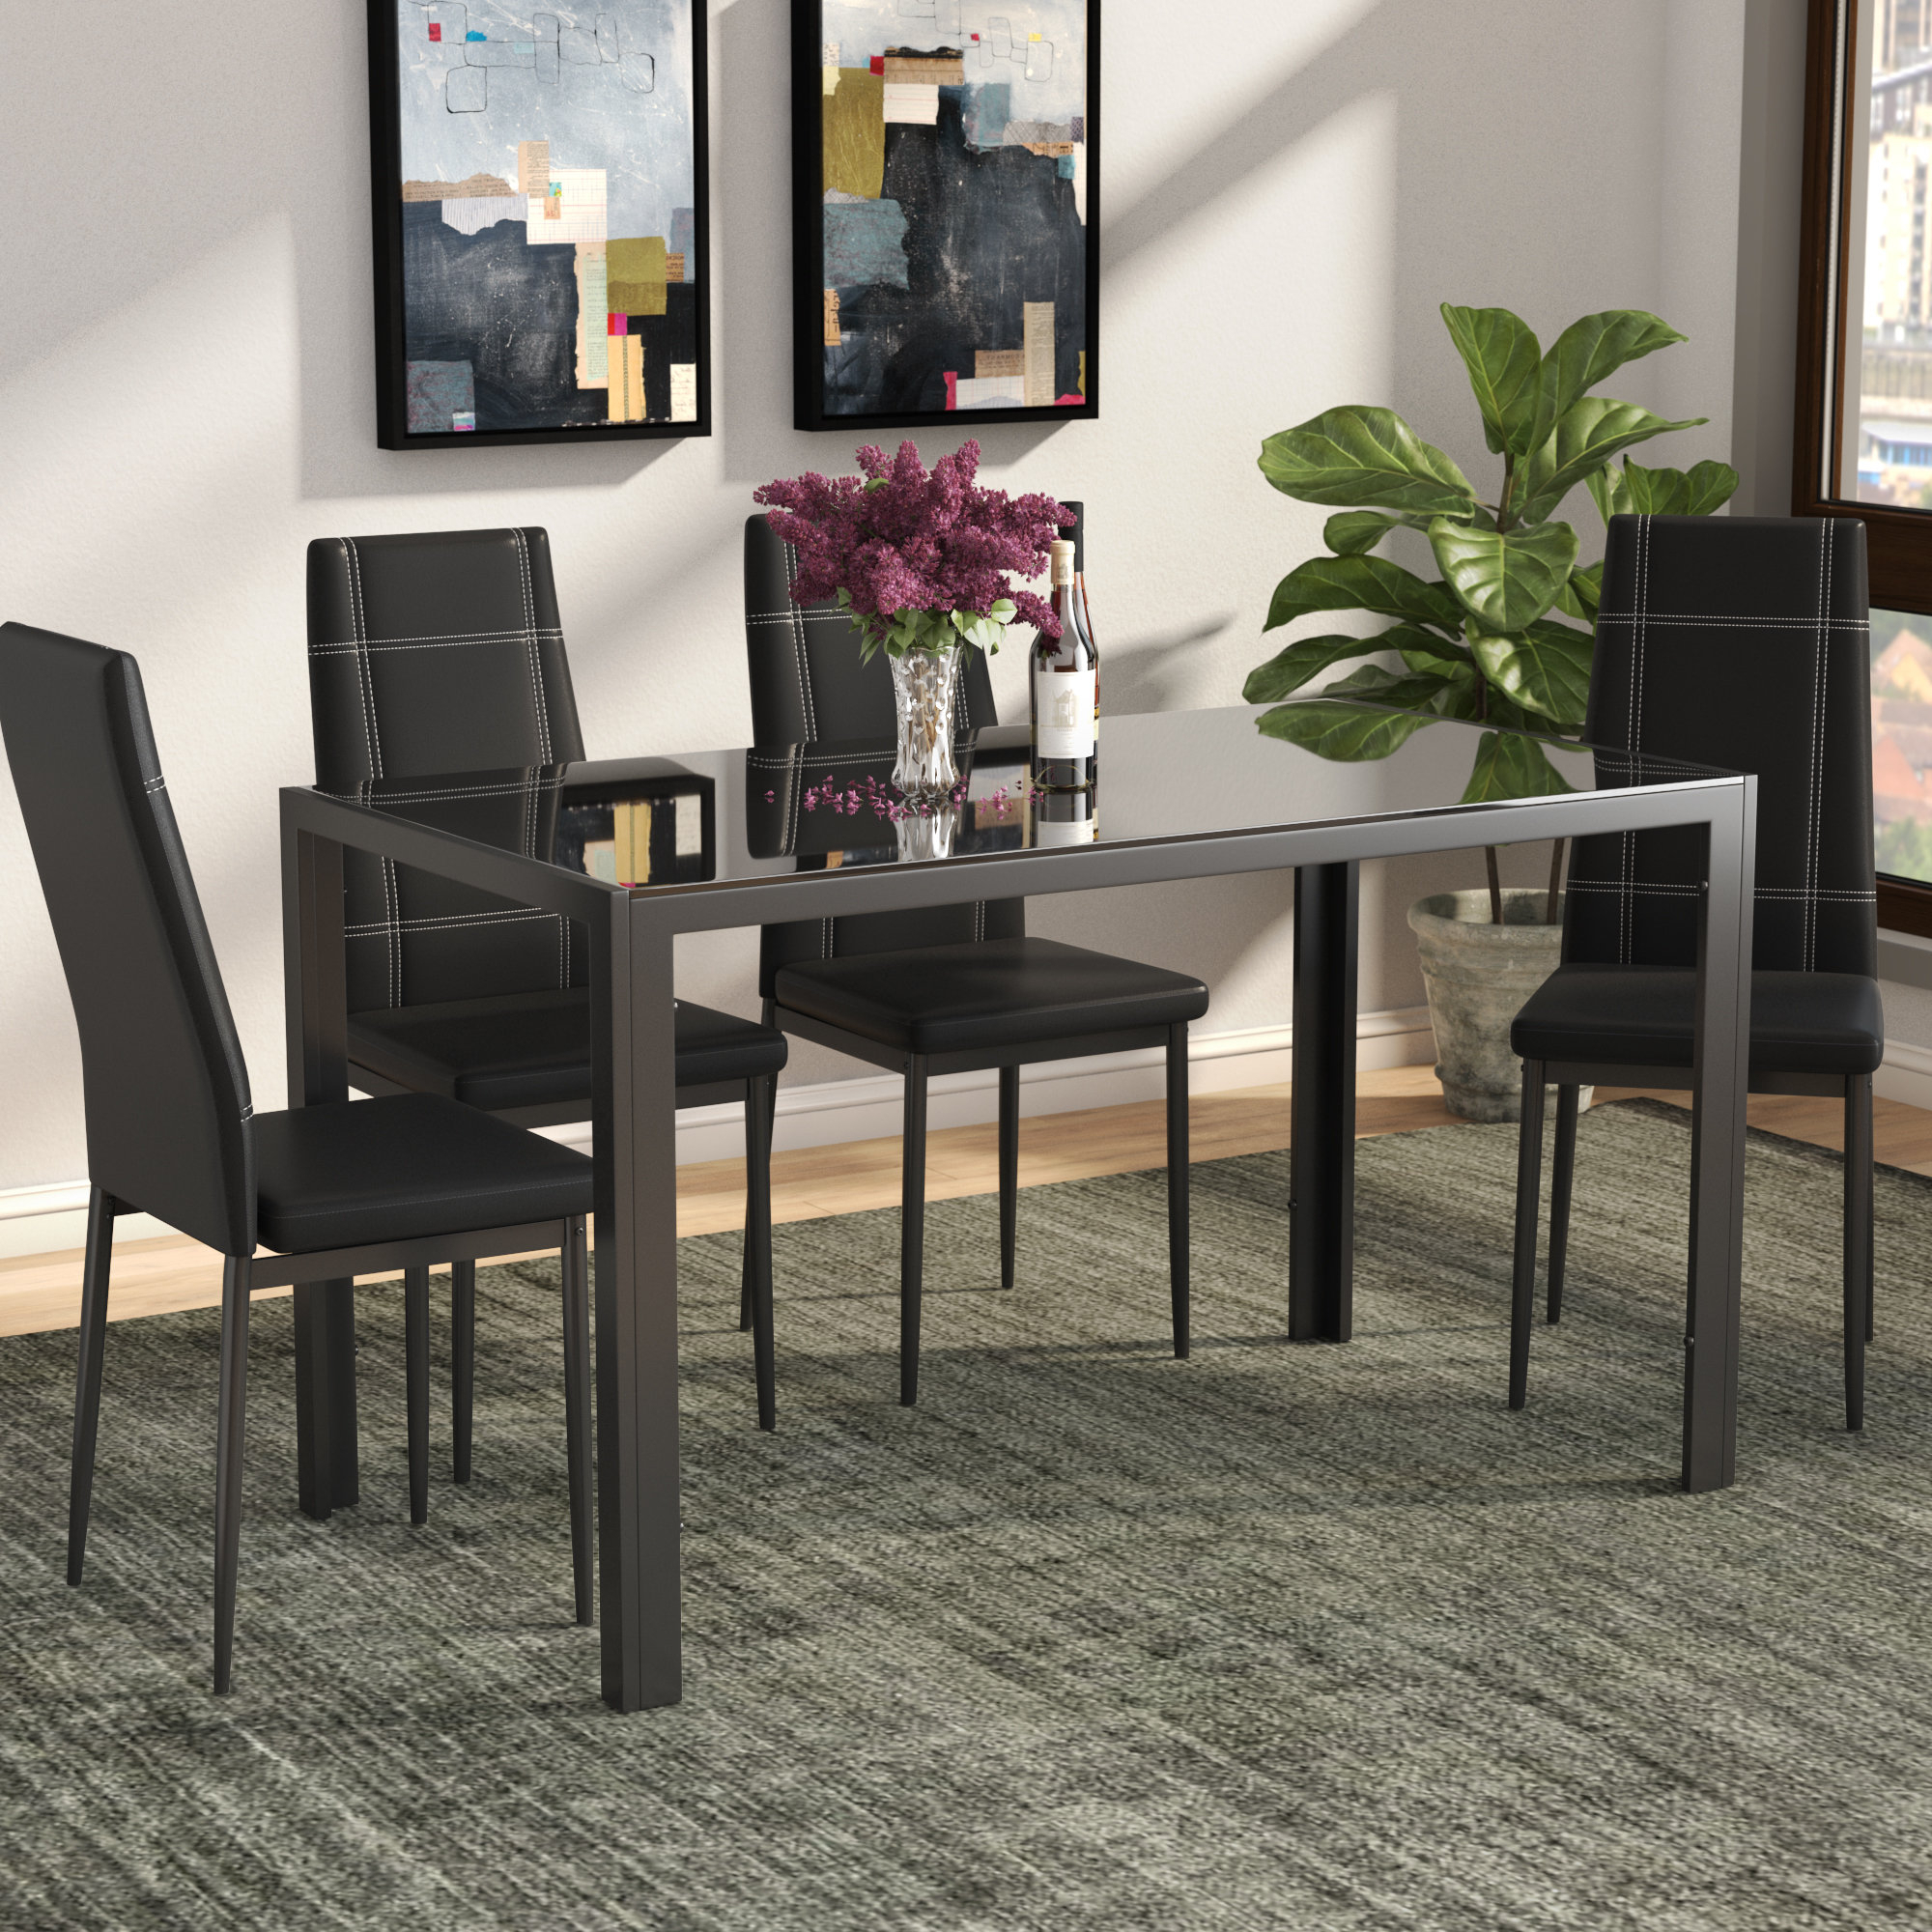 Autberry 5 Piece Dining Sets For Well Known Maynard 5 Piece Dining Set (Gallery 7 of 20)